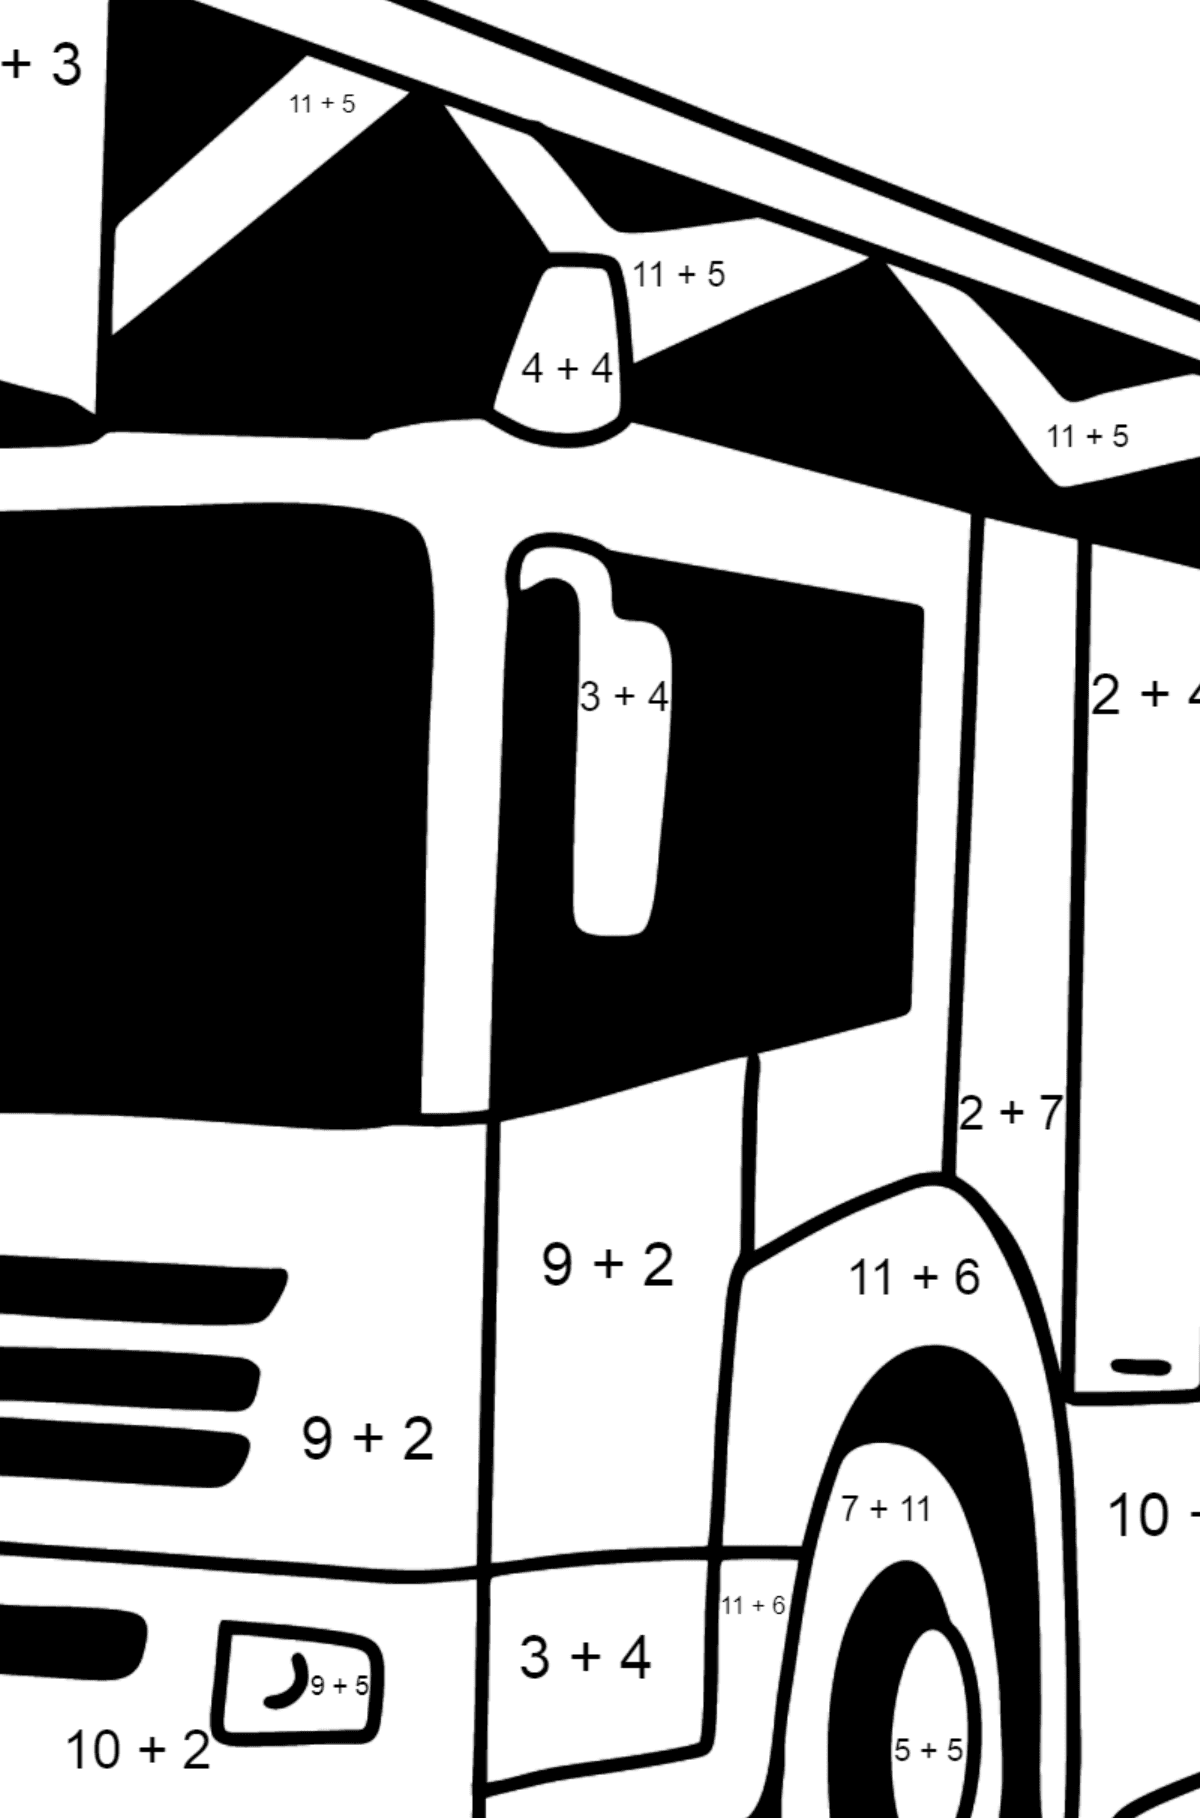 Fire Truck in Germany coloring page - Math Coloring - Addition for Kids